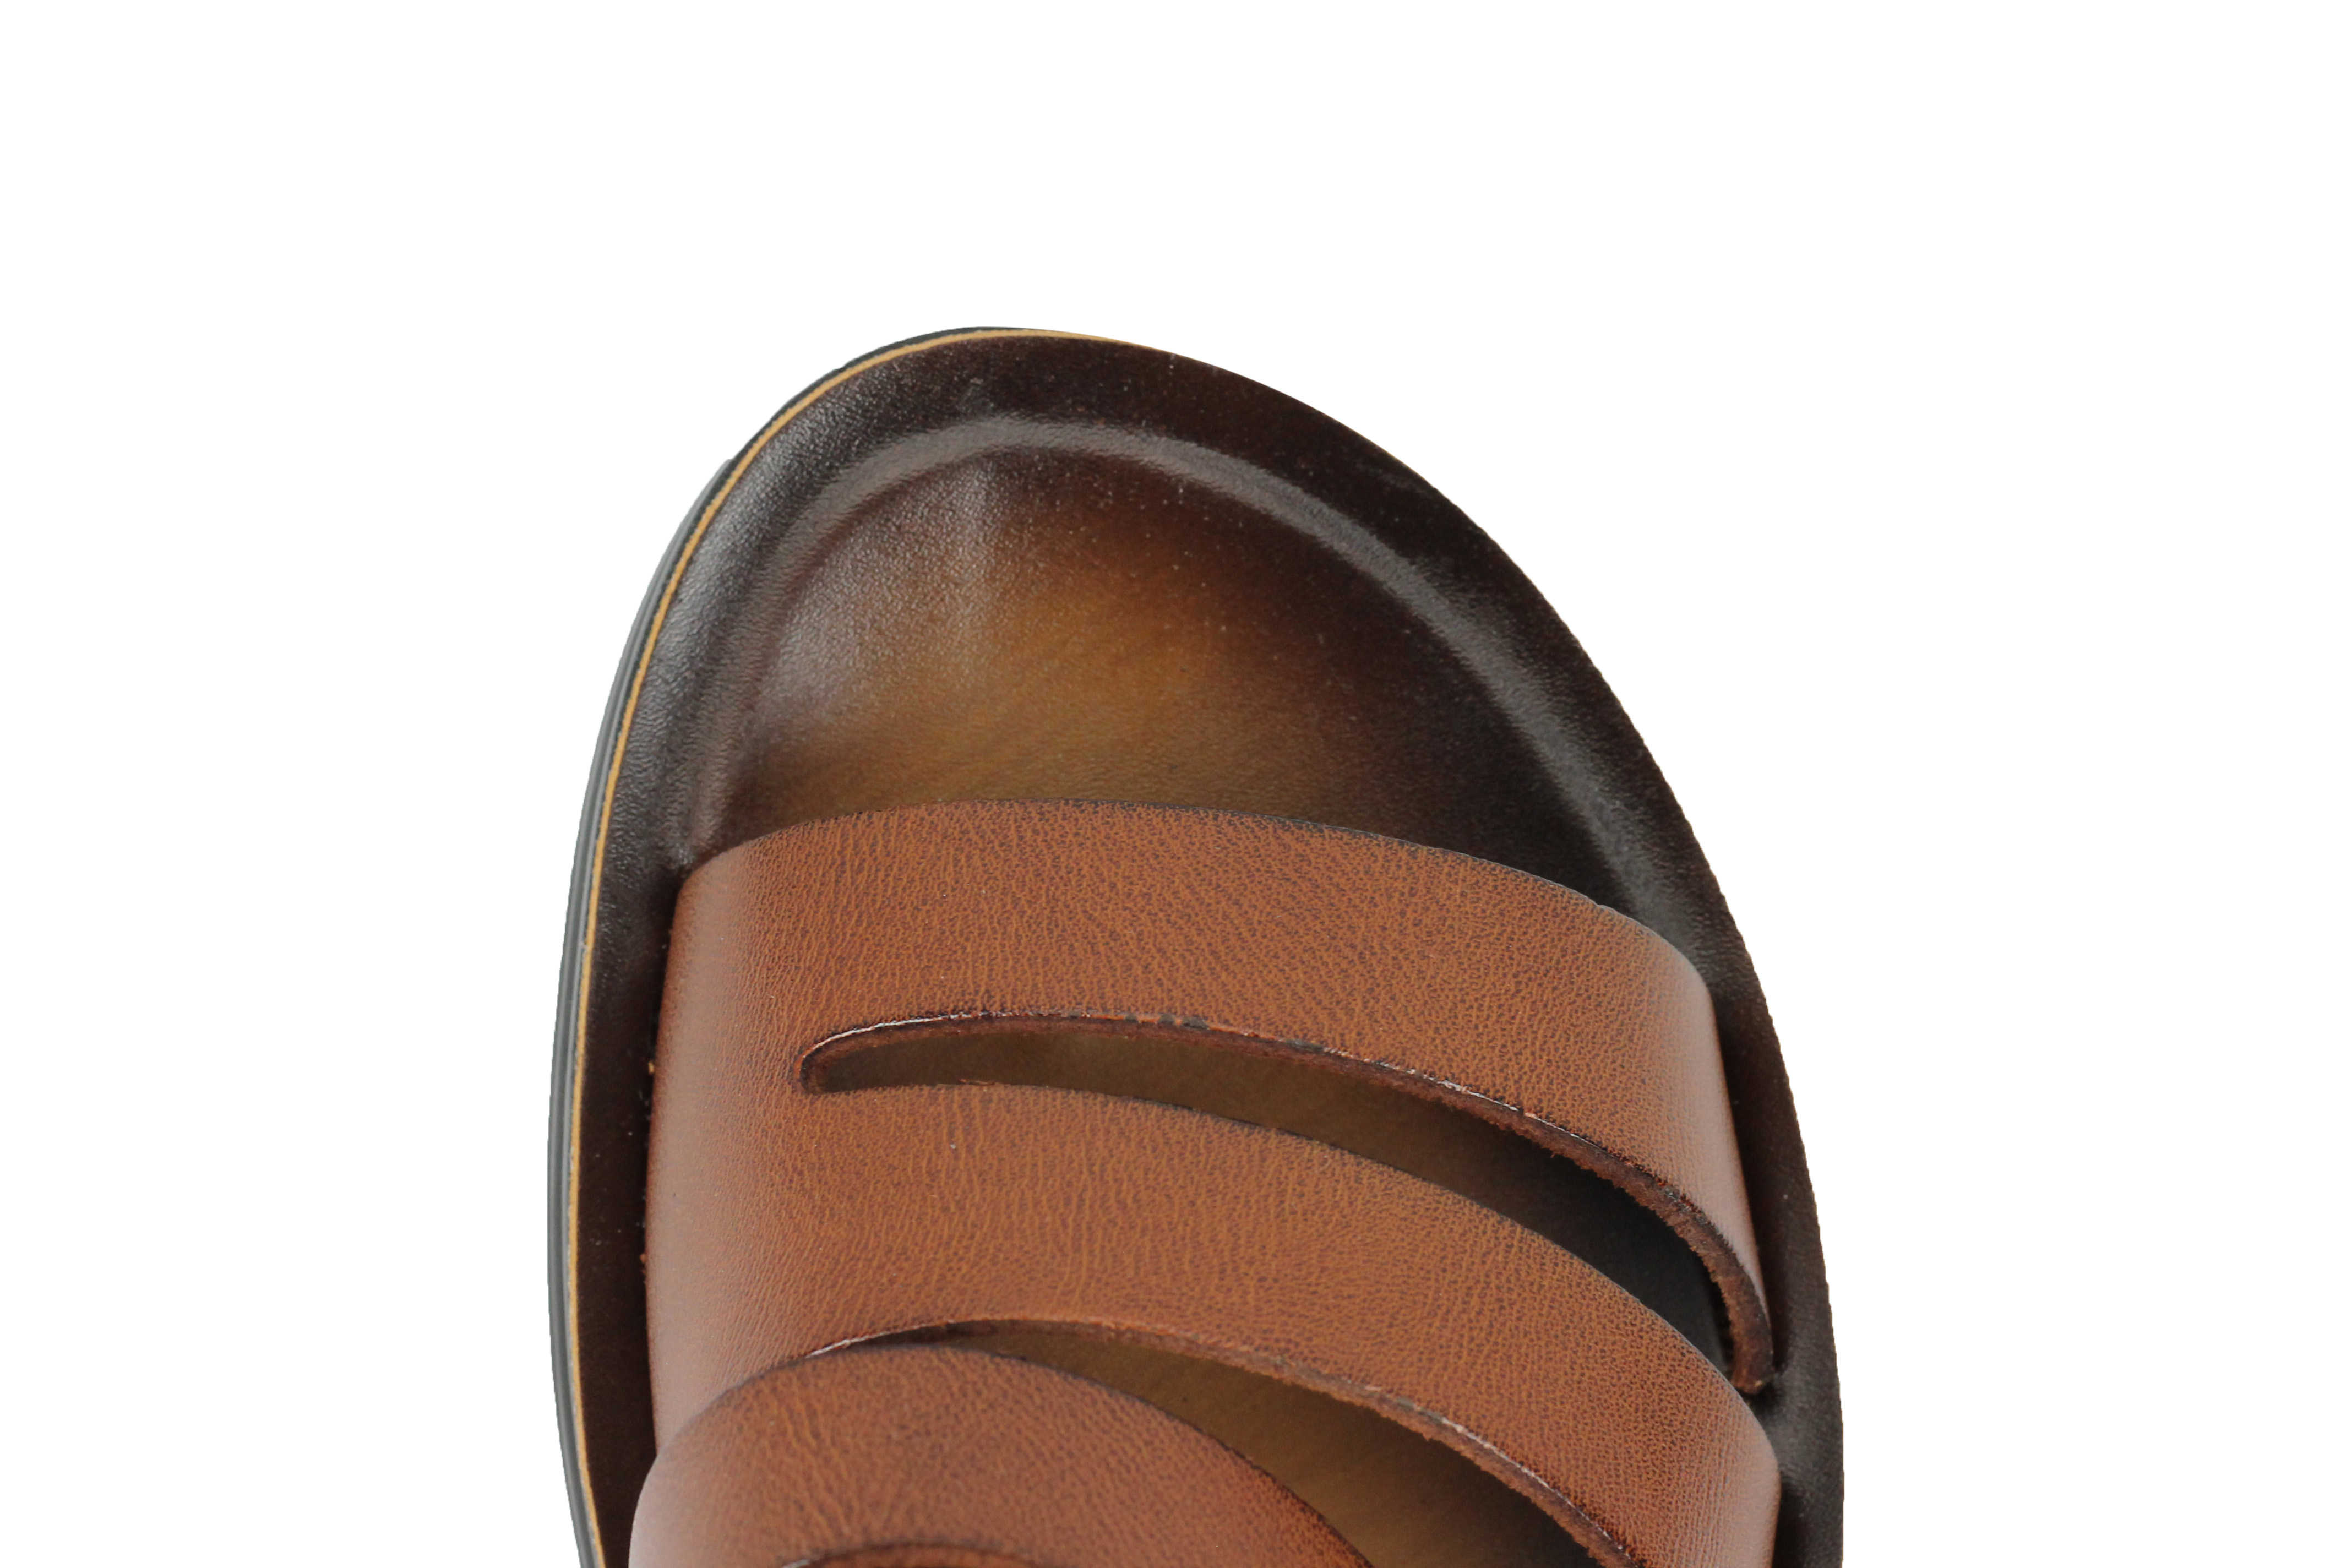 d0ab447b43b3b7 New Mens Genuine Leather Sandals Beach Walking Jesus Slippers Slider ...